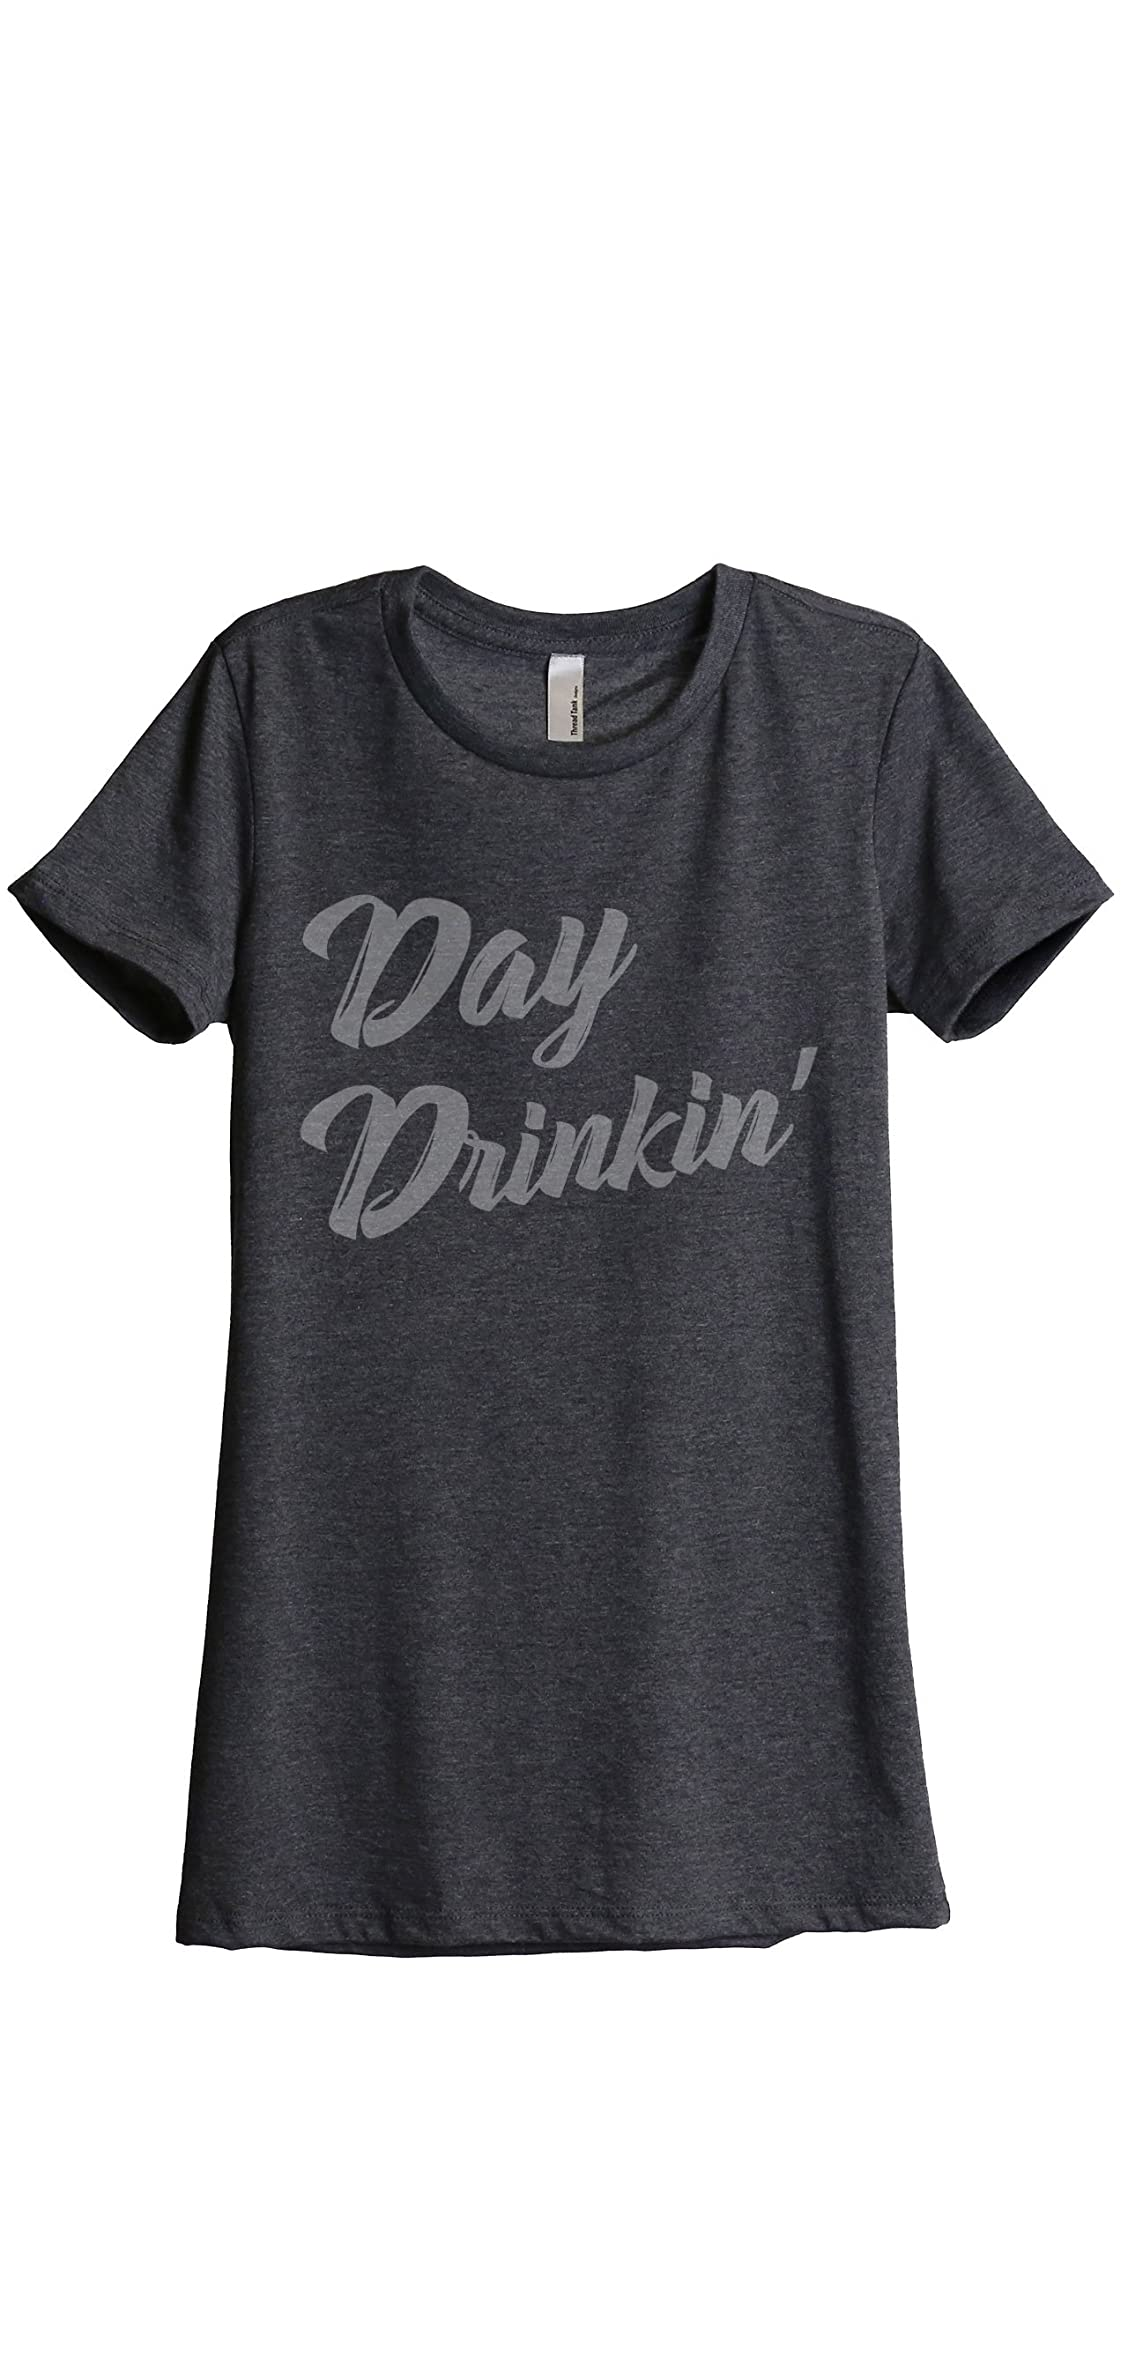 Day Drinkin Drinking Women's Fashion Relaxed T-shirt